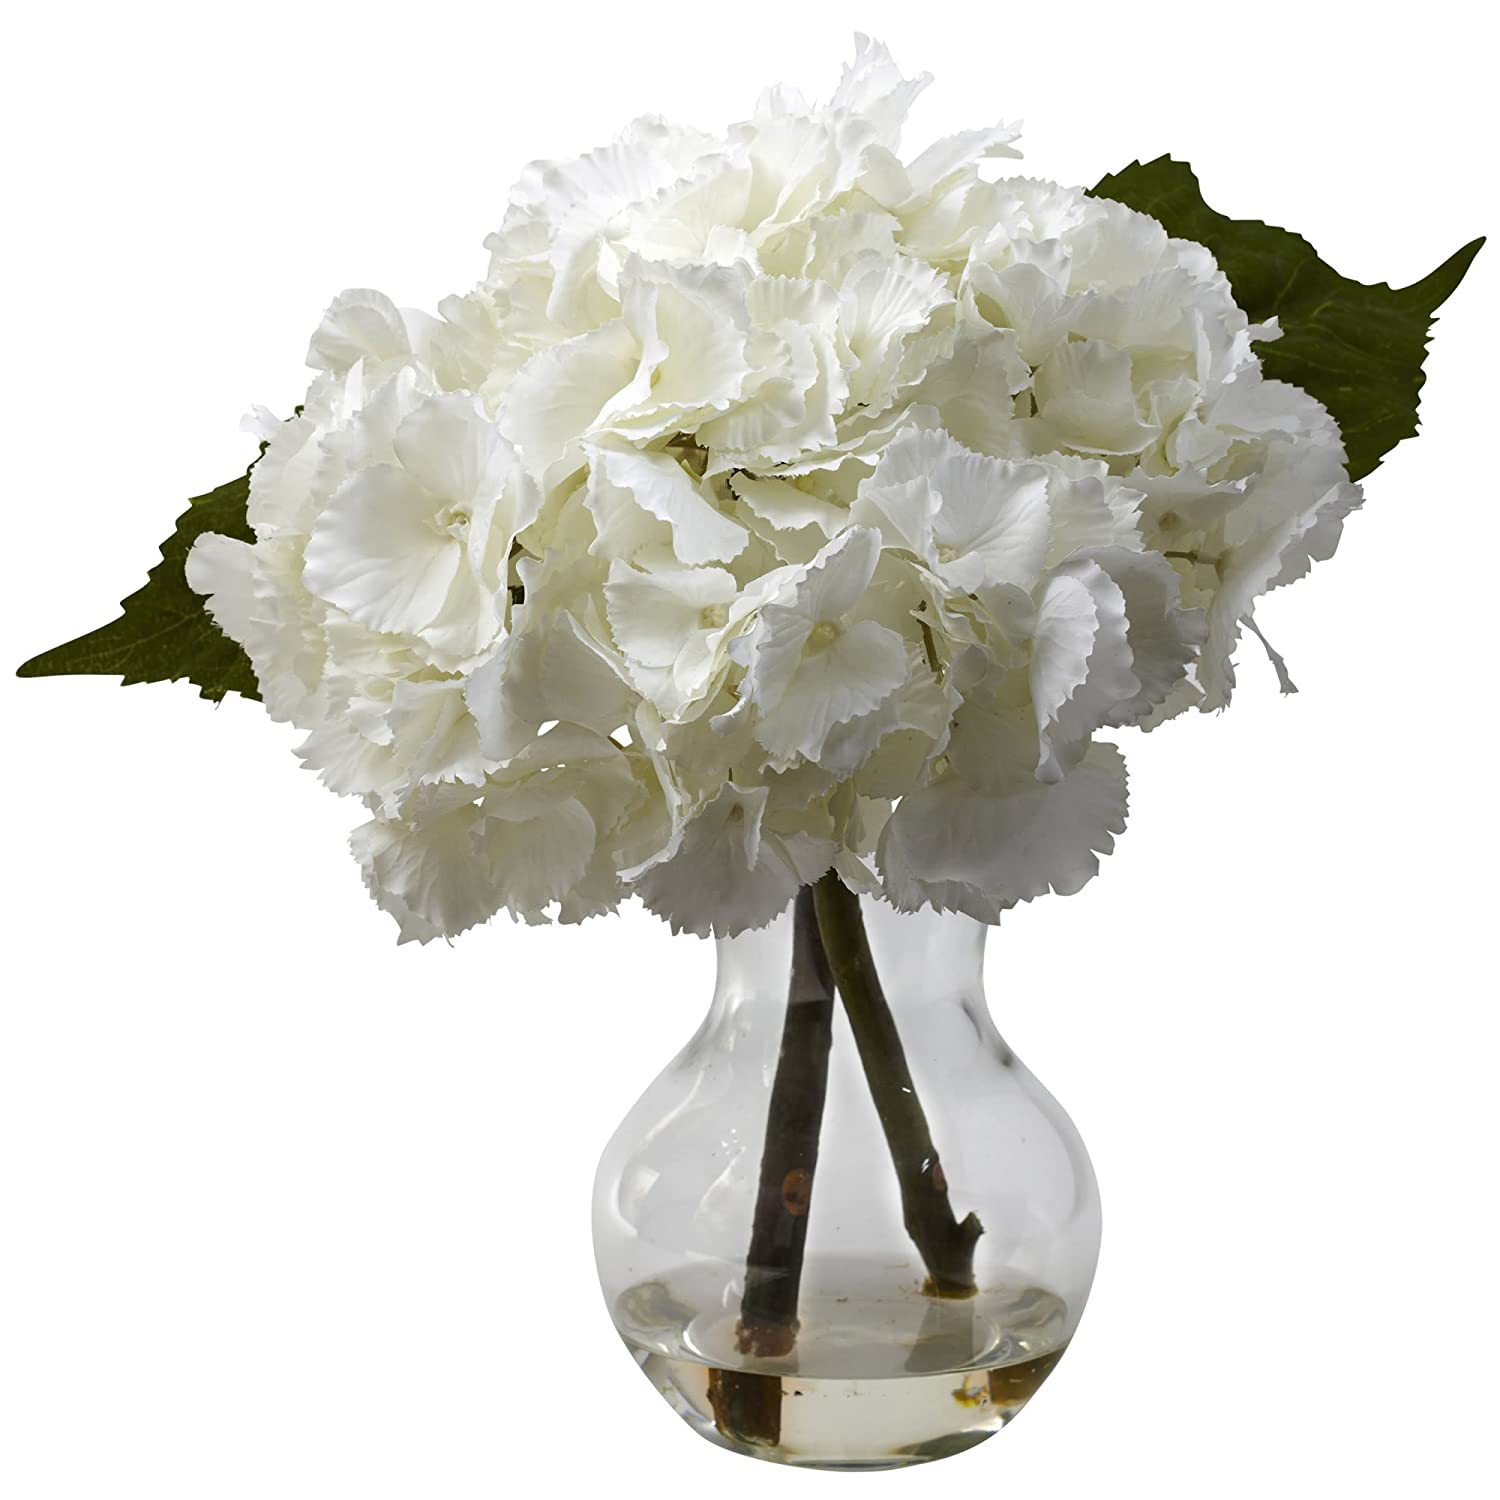 Amazon nearly natural 1314 blooming hydrangea with vase amazon nearly natural 1314 blooming hydrangea with vase arrangement white home kitchen reviewsmspy